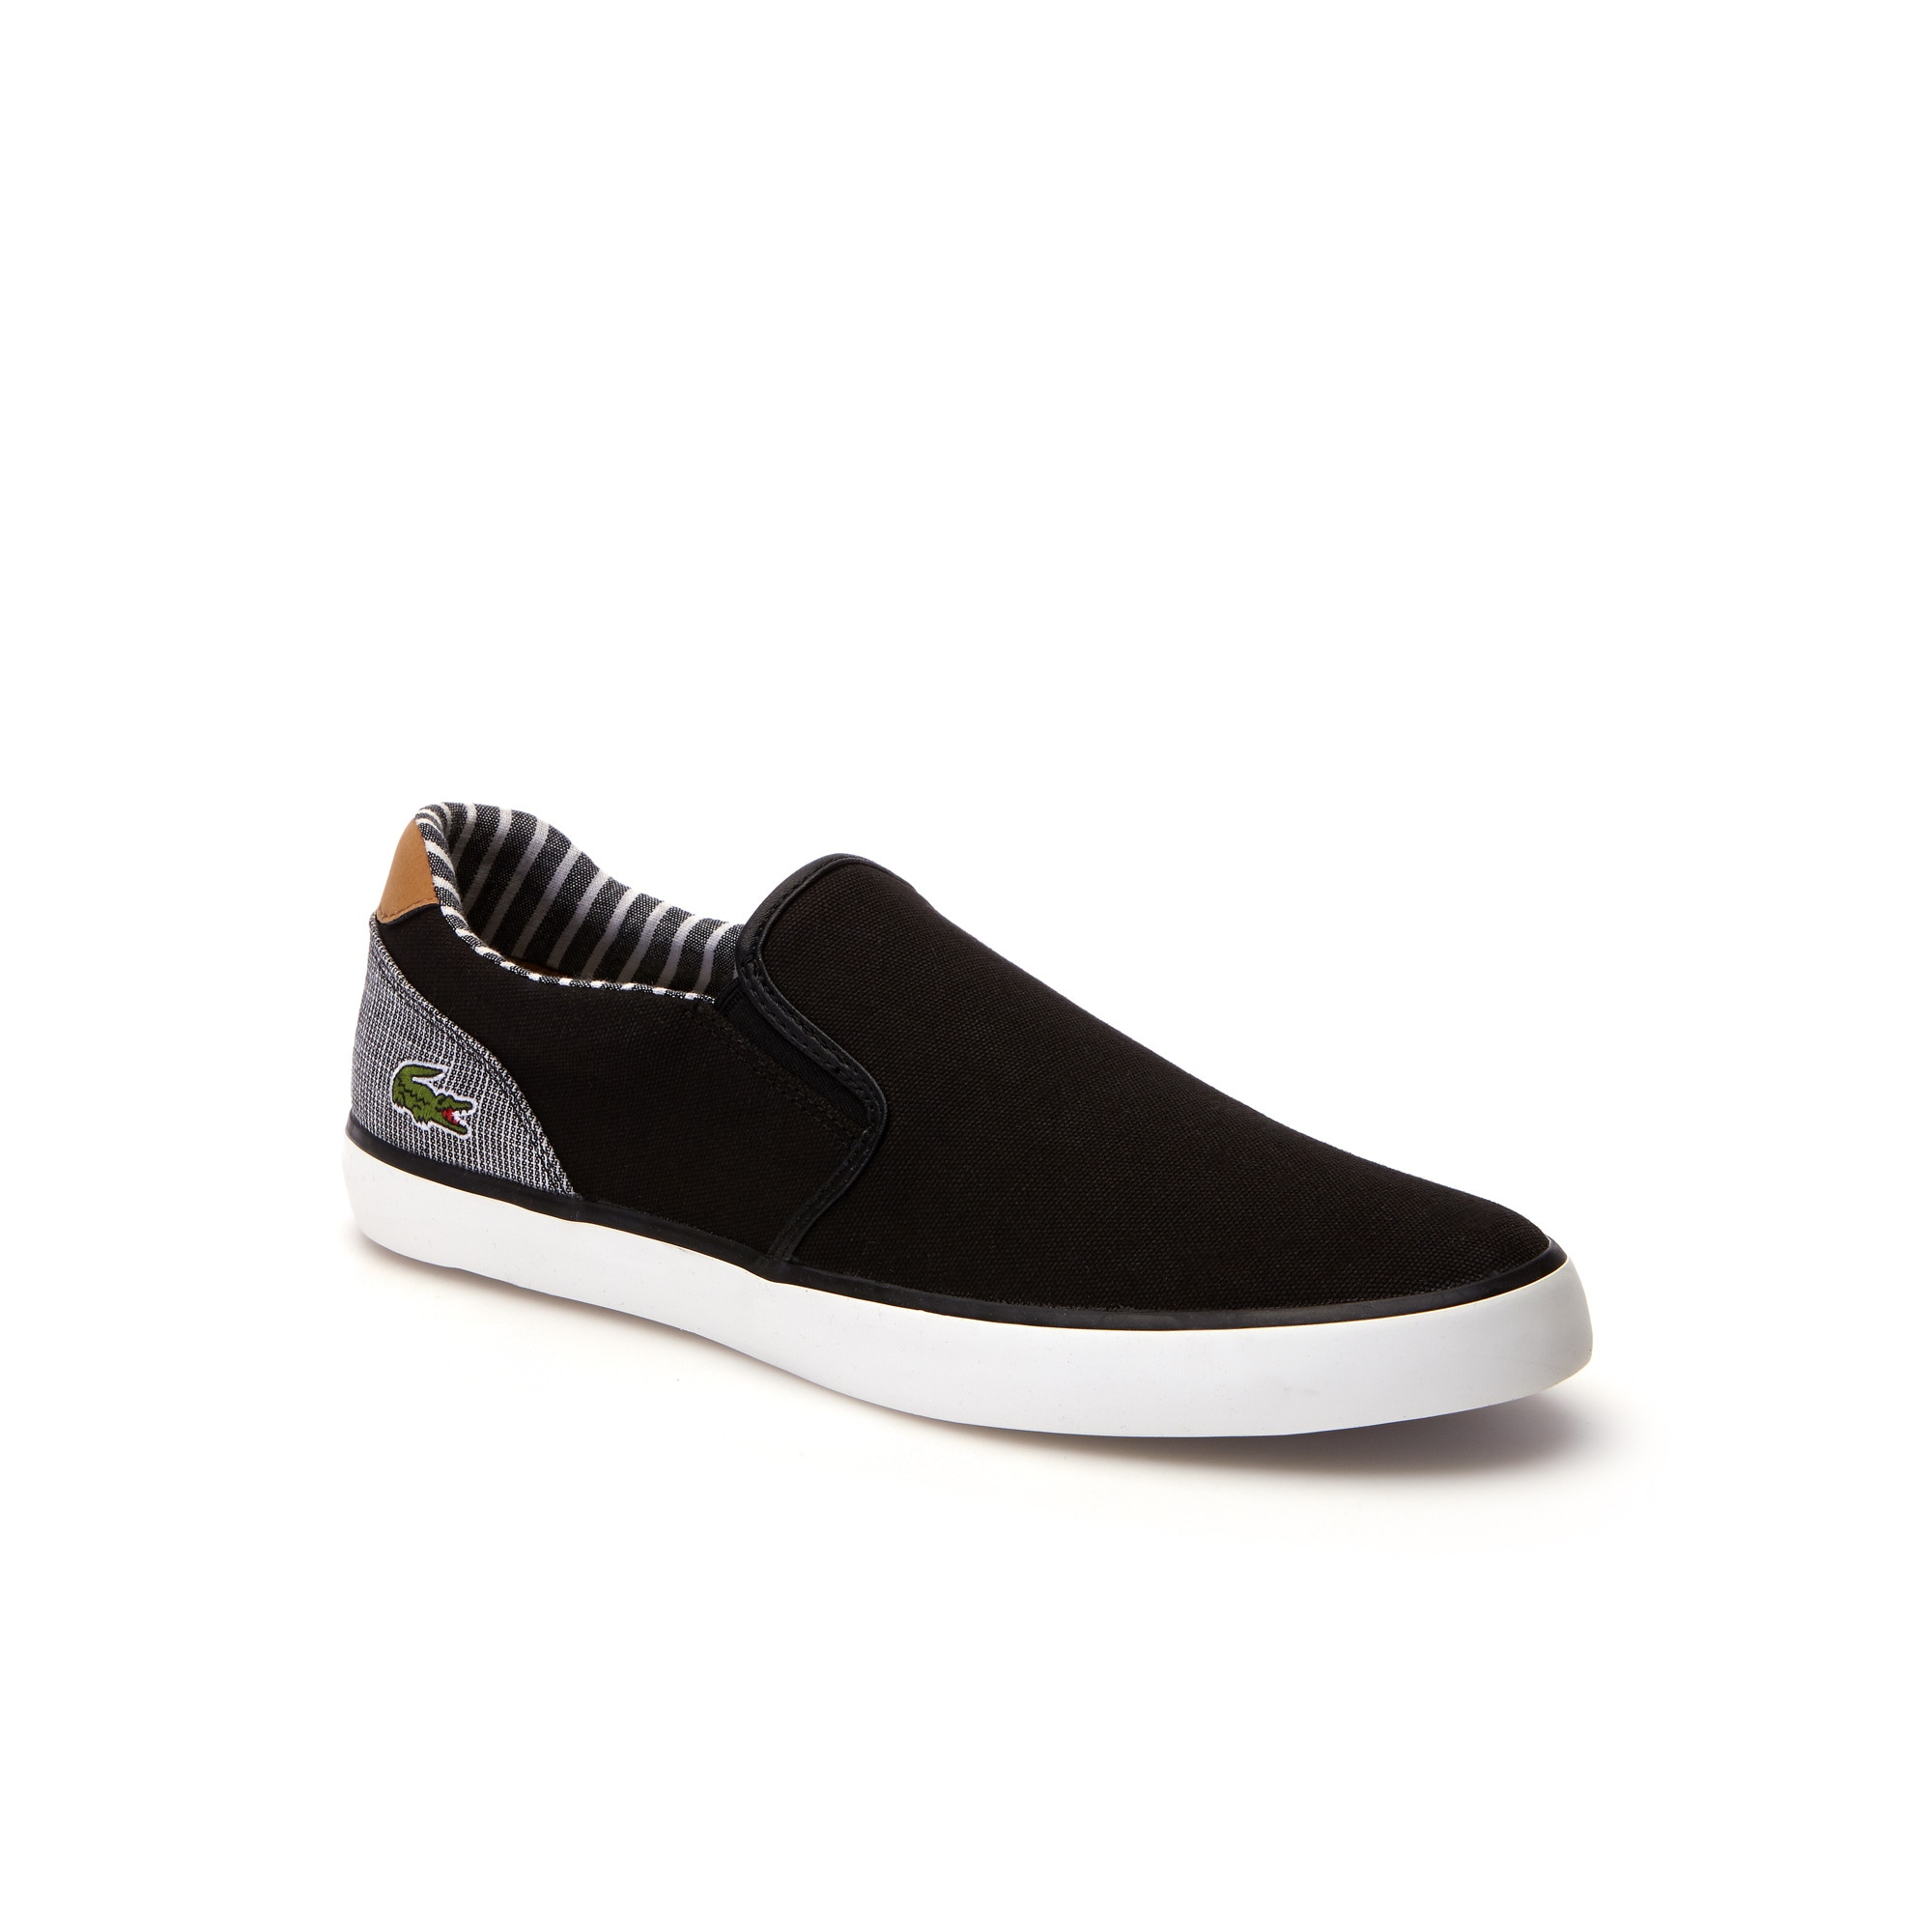 Men's Jouer Canvas Slip-Ons